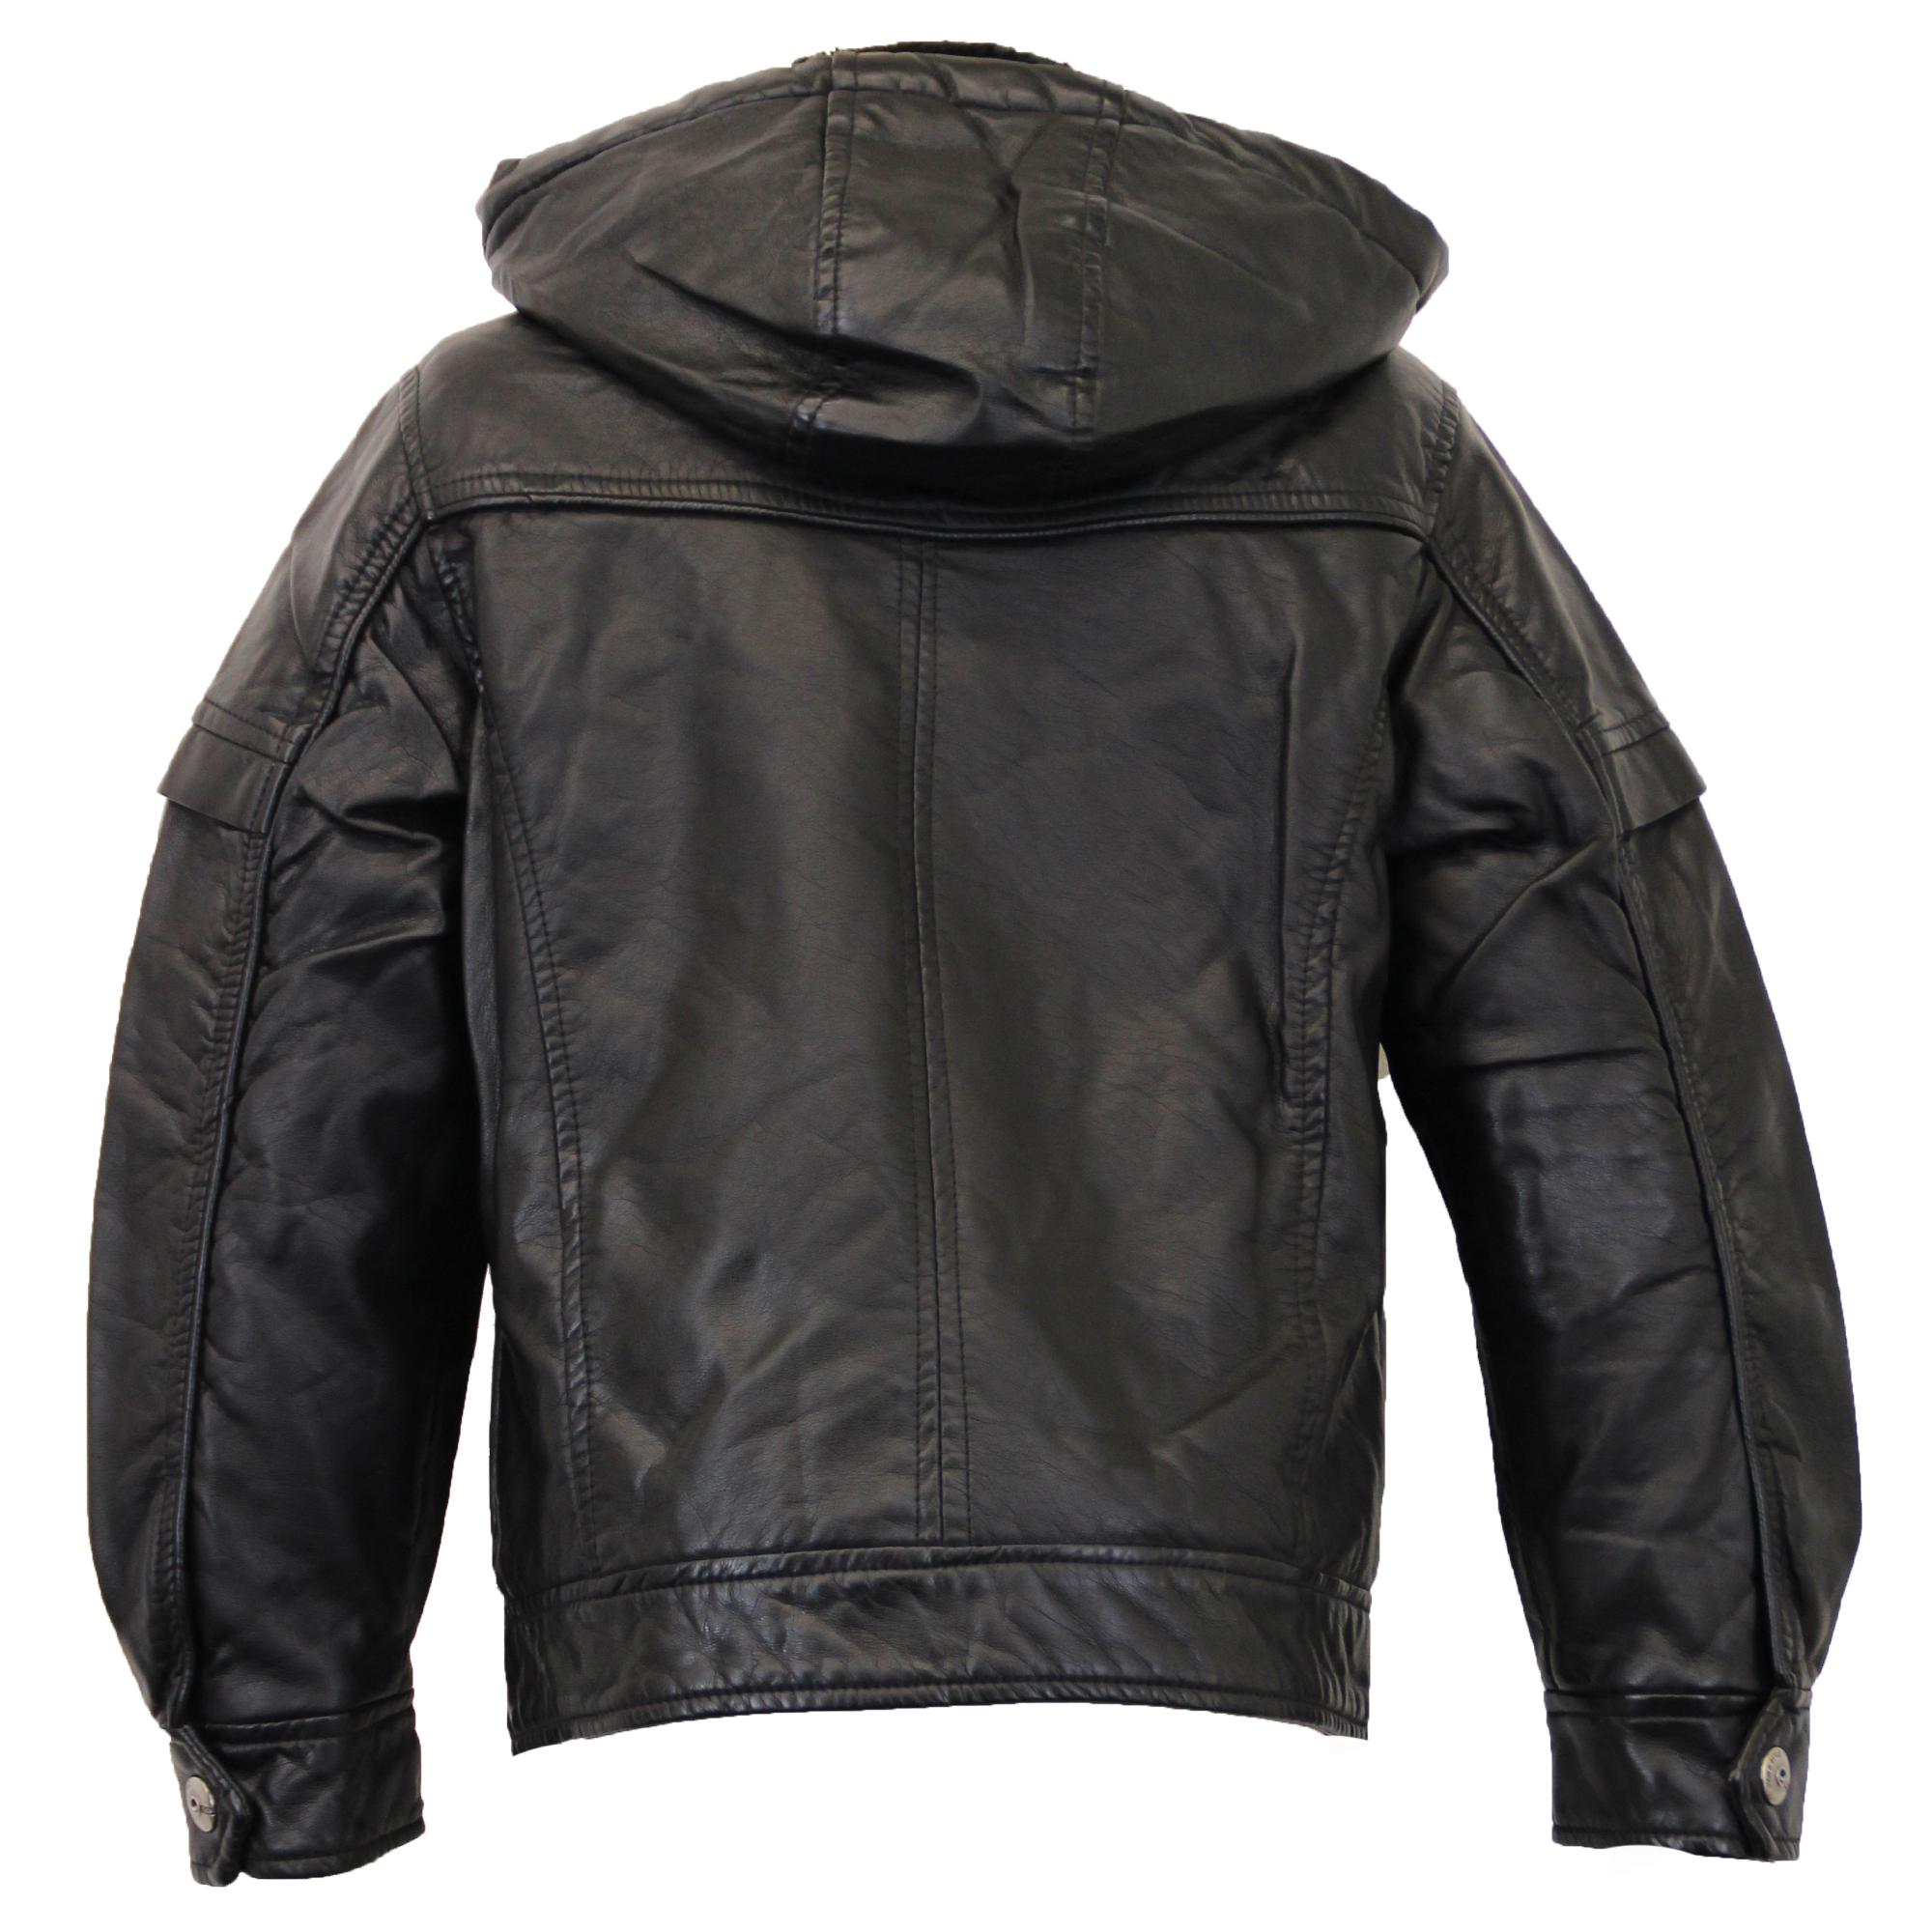 NEW WOMEN MEN KIDS & BABY LUGGAGE BRANDS DEALS; Search results. of results for Clothing: Coats & Jackets Store: New Look. New Look Women's Fiona Coat. £ Prime. New Look Women's Faux Fur Coat. £ - £ Prime. New Look Men's Zip Through Nylon Jersey Mix Jacket.